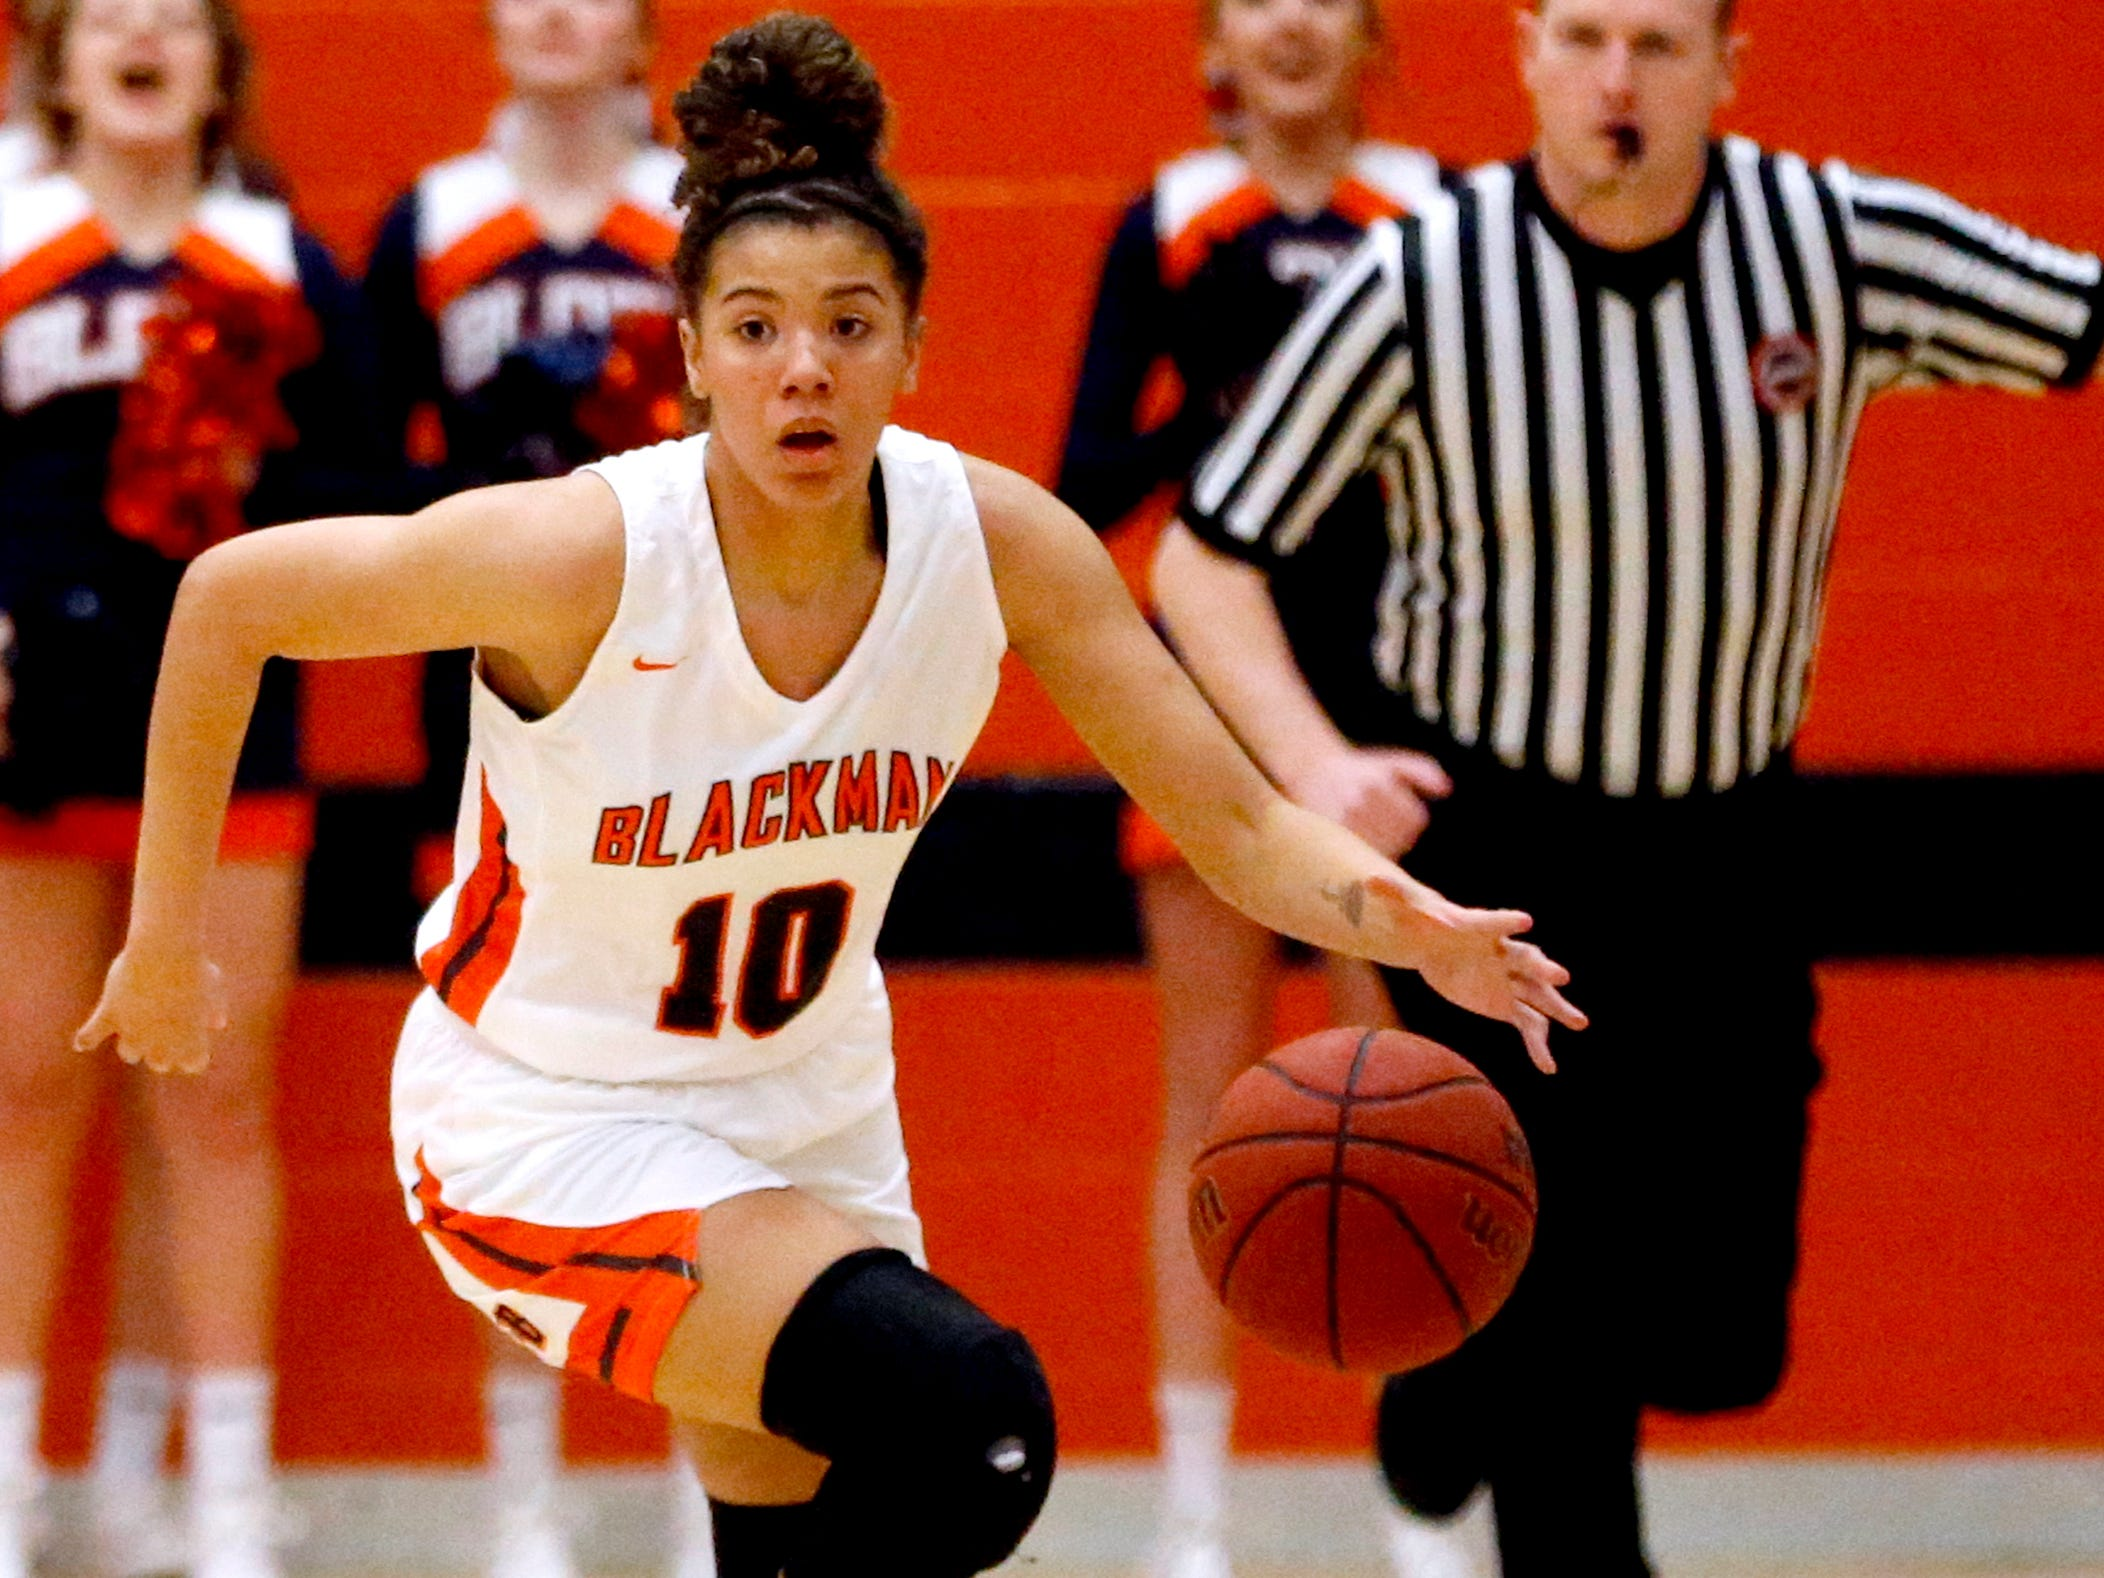 Blackman's Jaida Bond (10) brings the ball down the court during the game against Oakland on Friday, Feb. 8, 2019.